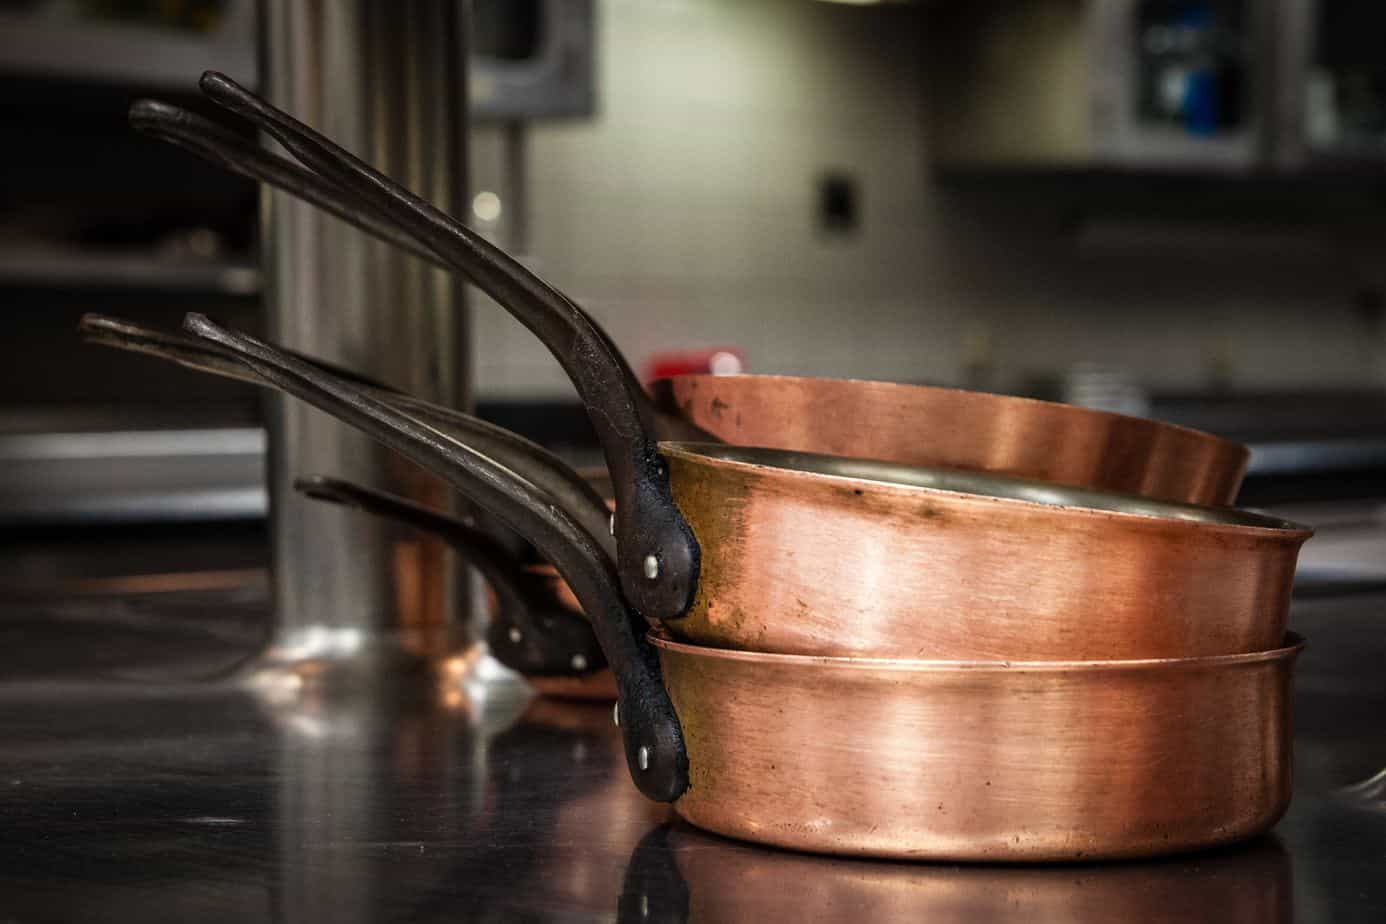 All You Need to Know About Non-stick Cookware